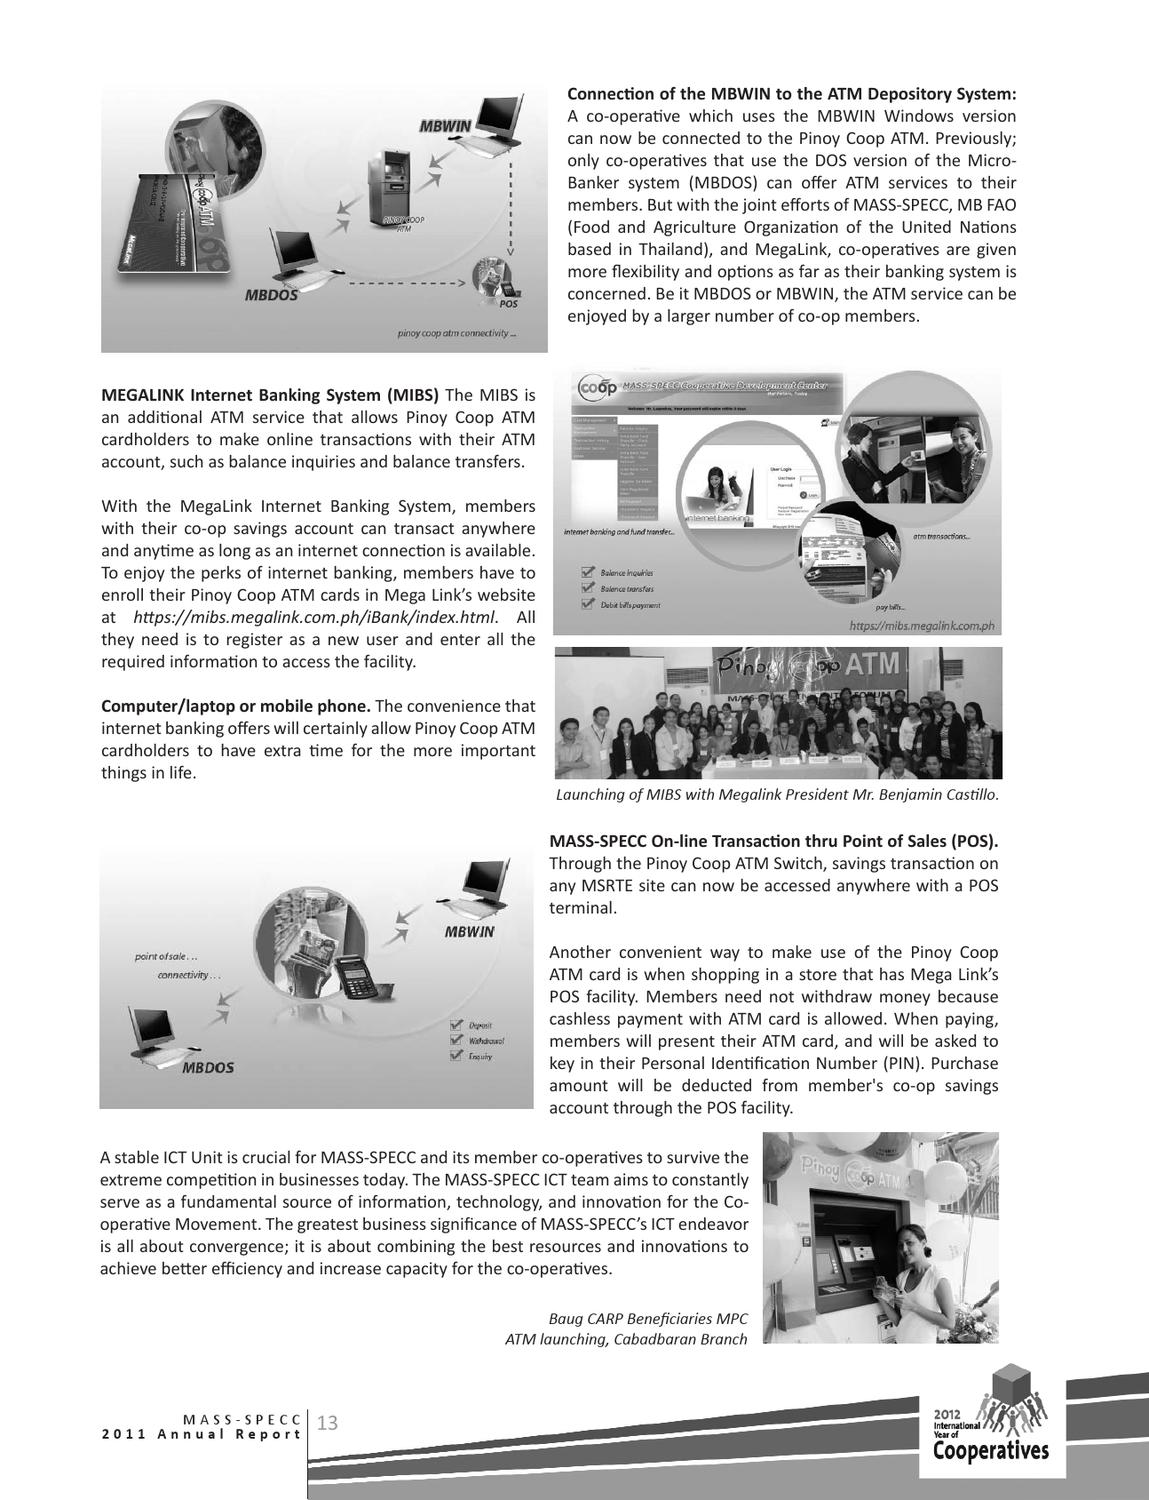 Annual Report 2012 by MASS-SPECC Cooperative - issuu